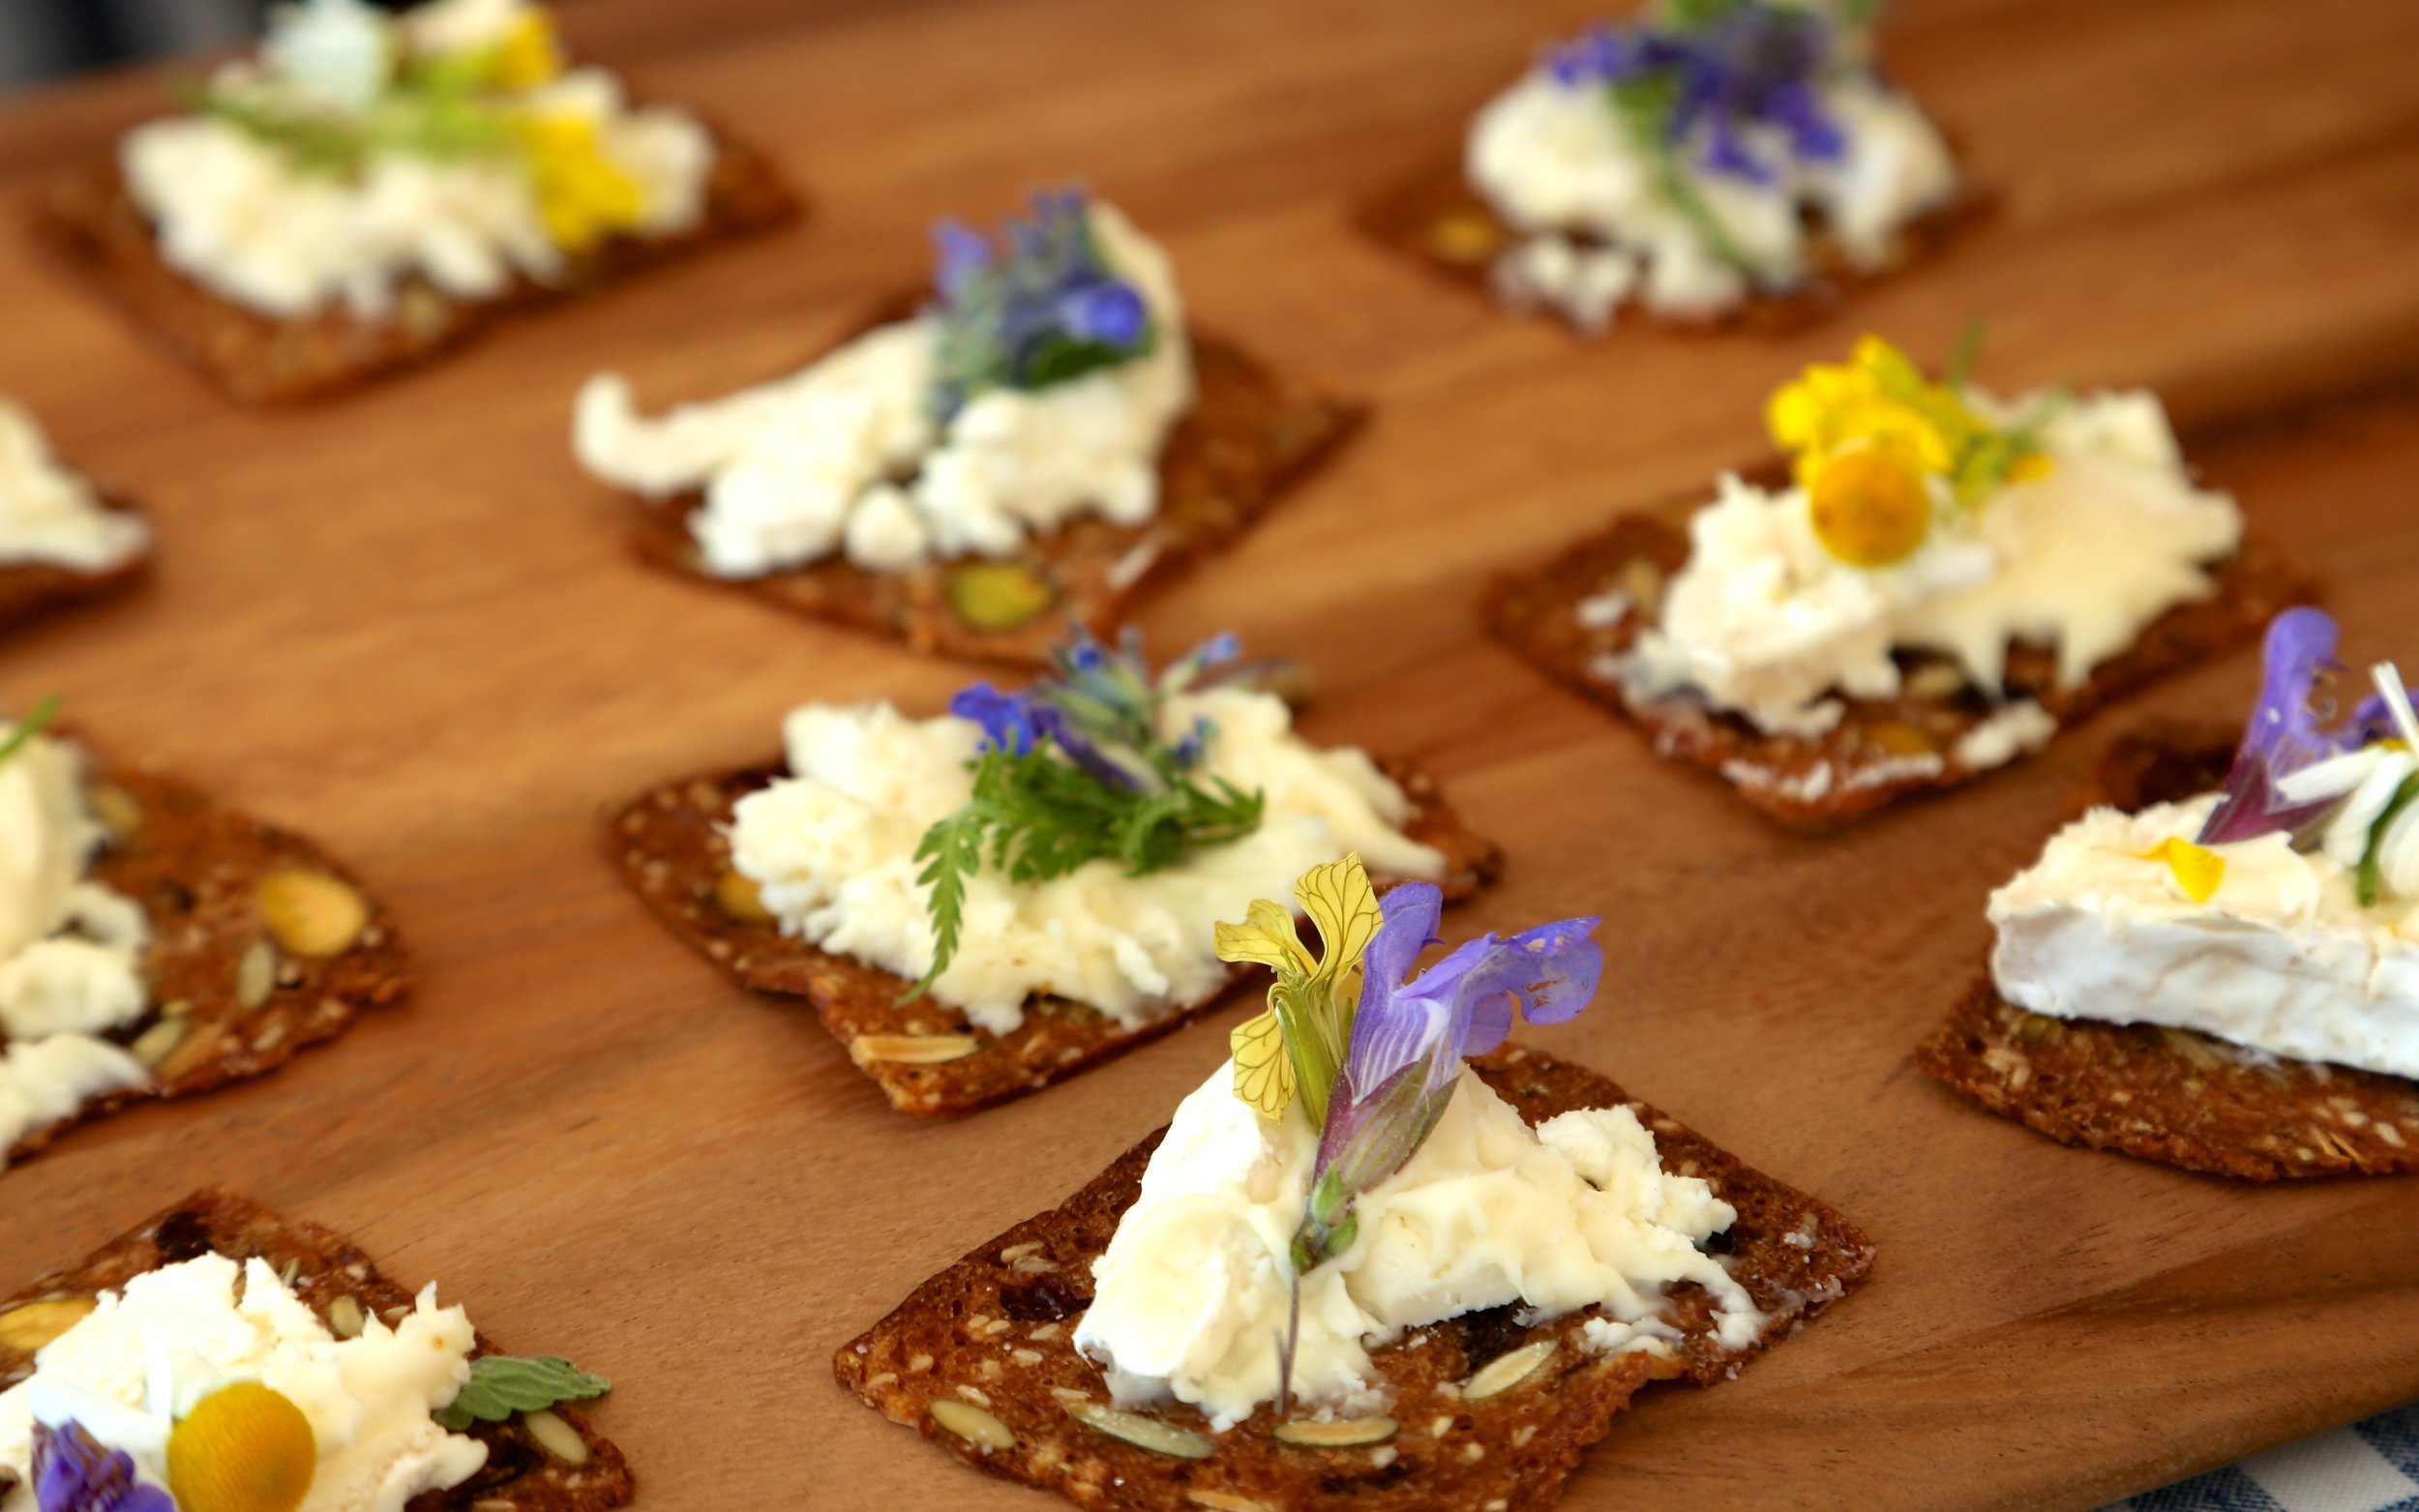 Whipped ricotta with edible flower on crisps